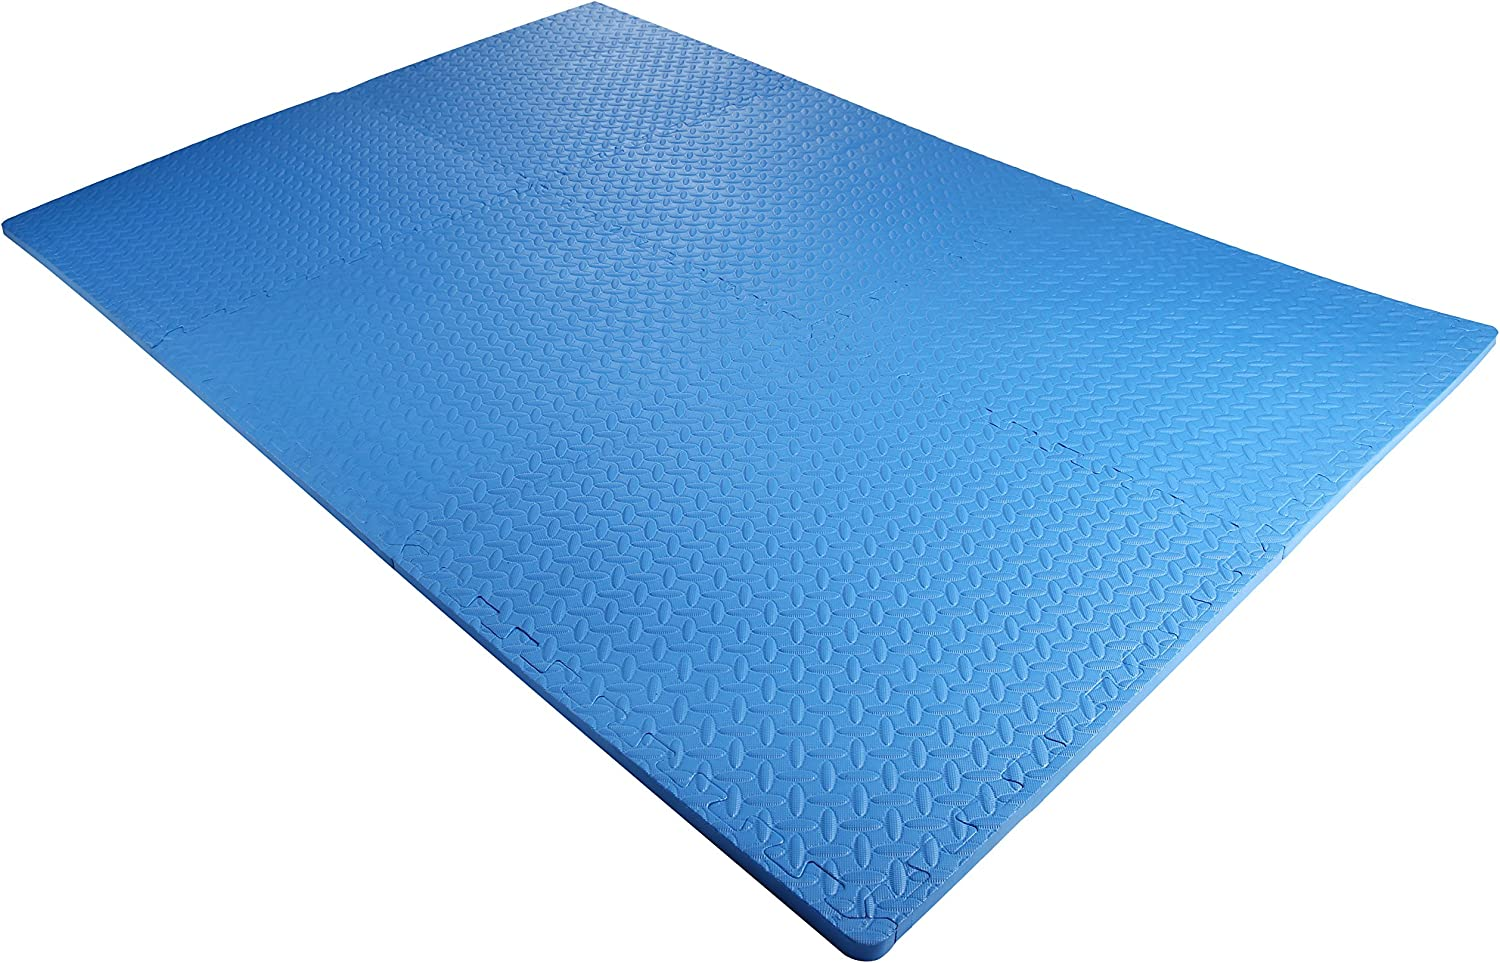 BalanceFrom Puzzle Exercise Mat with EVA Foam Interlocking Tiles, Gray, 144 sq. ft. (Pack of 36): Sports & Outdoors